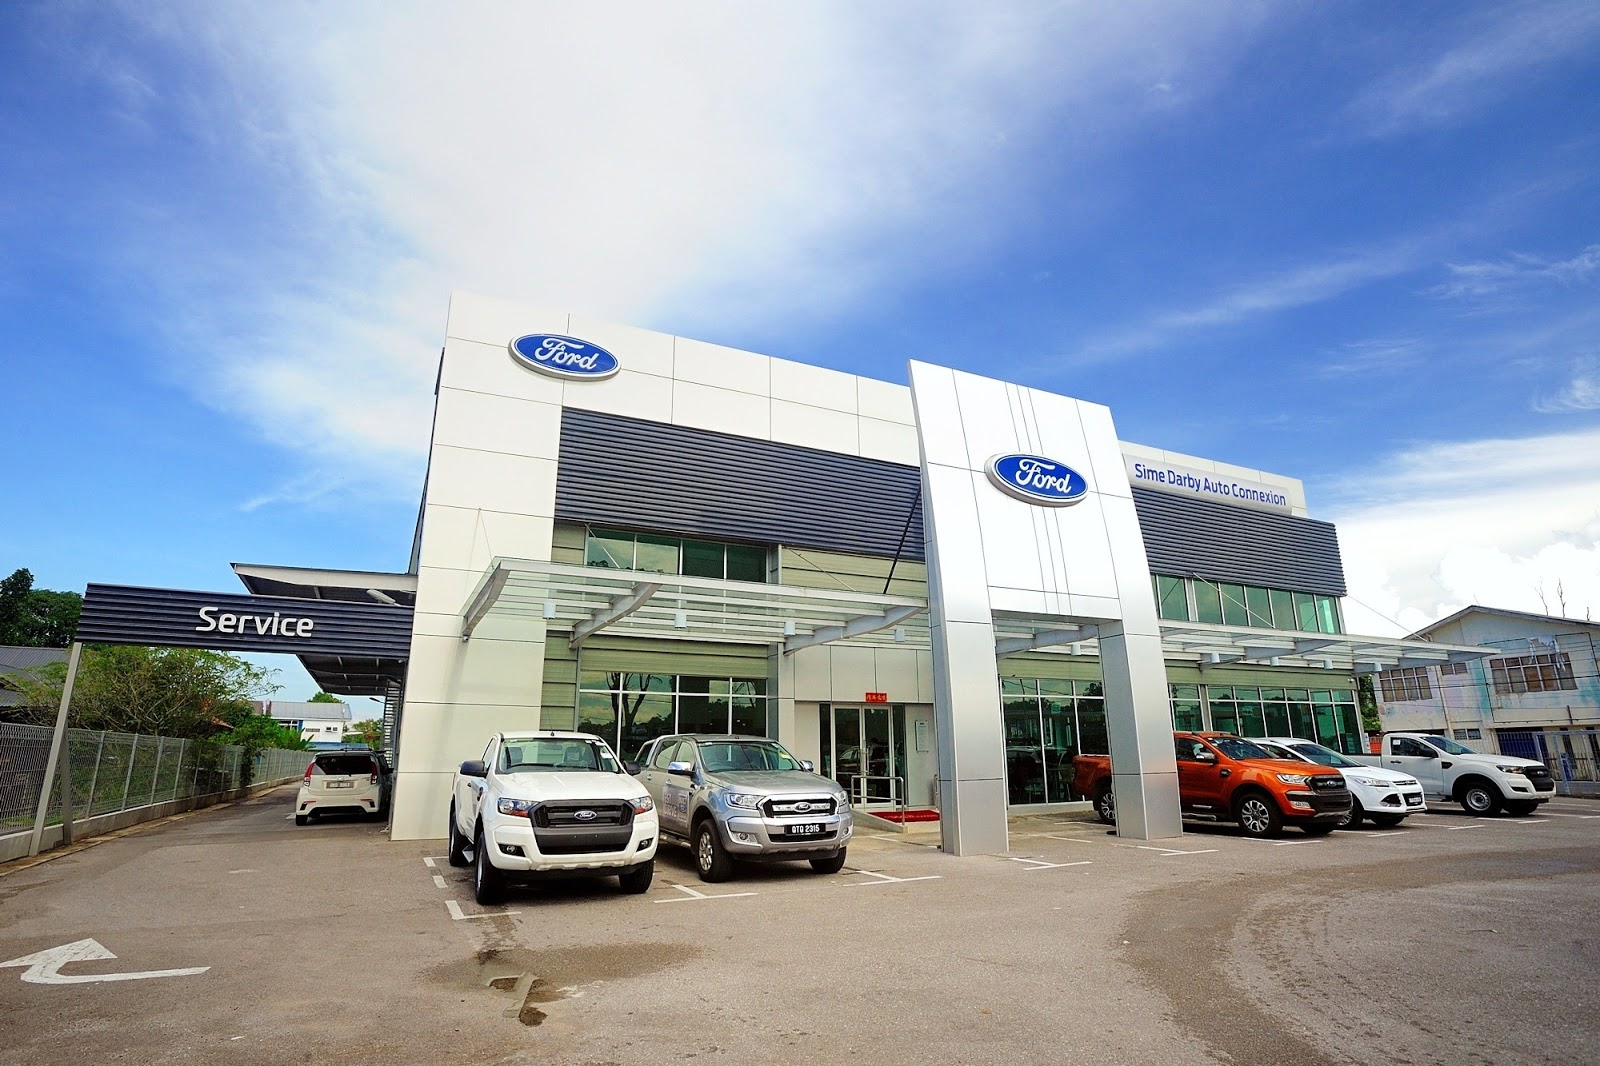 Motoring Malaysia New Sime Darby Auto Connexion Ford 3s Centre